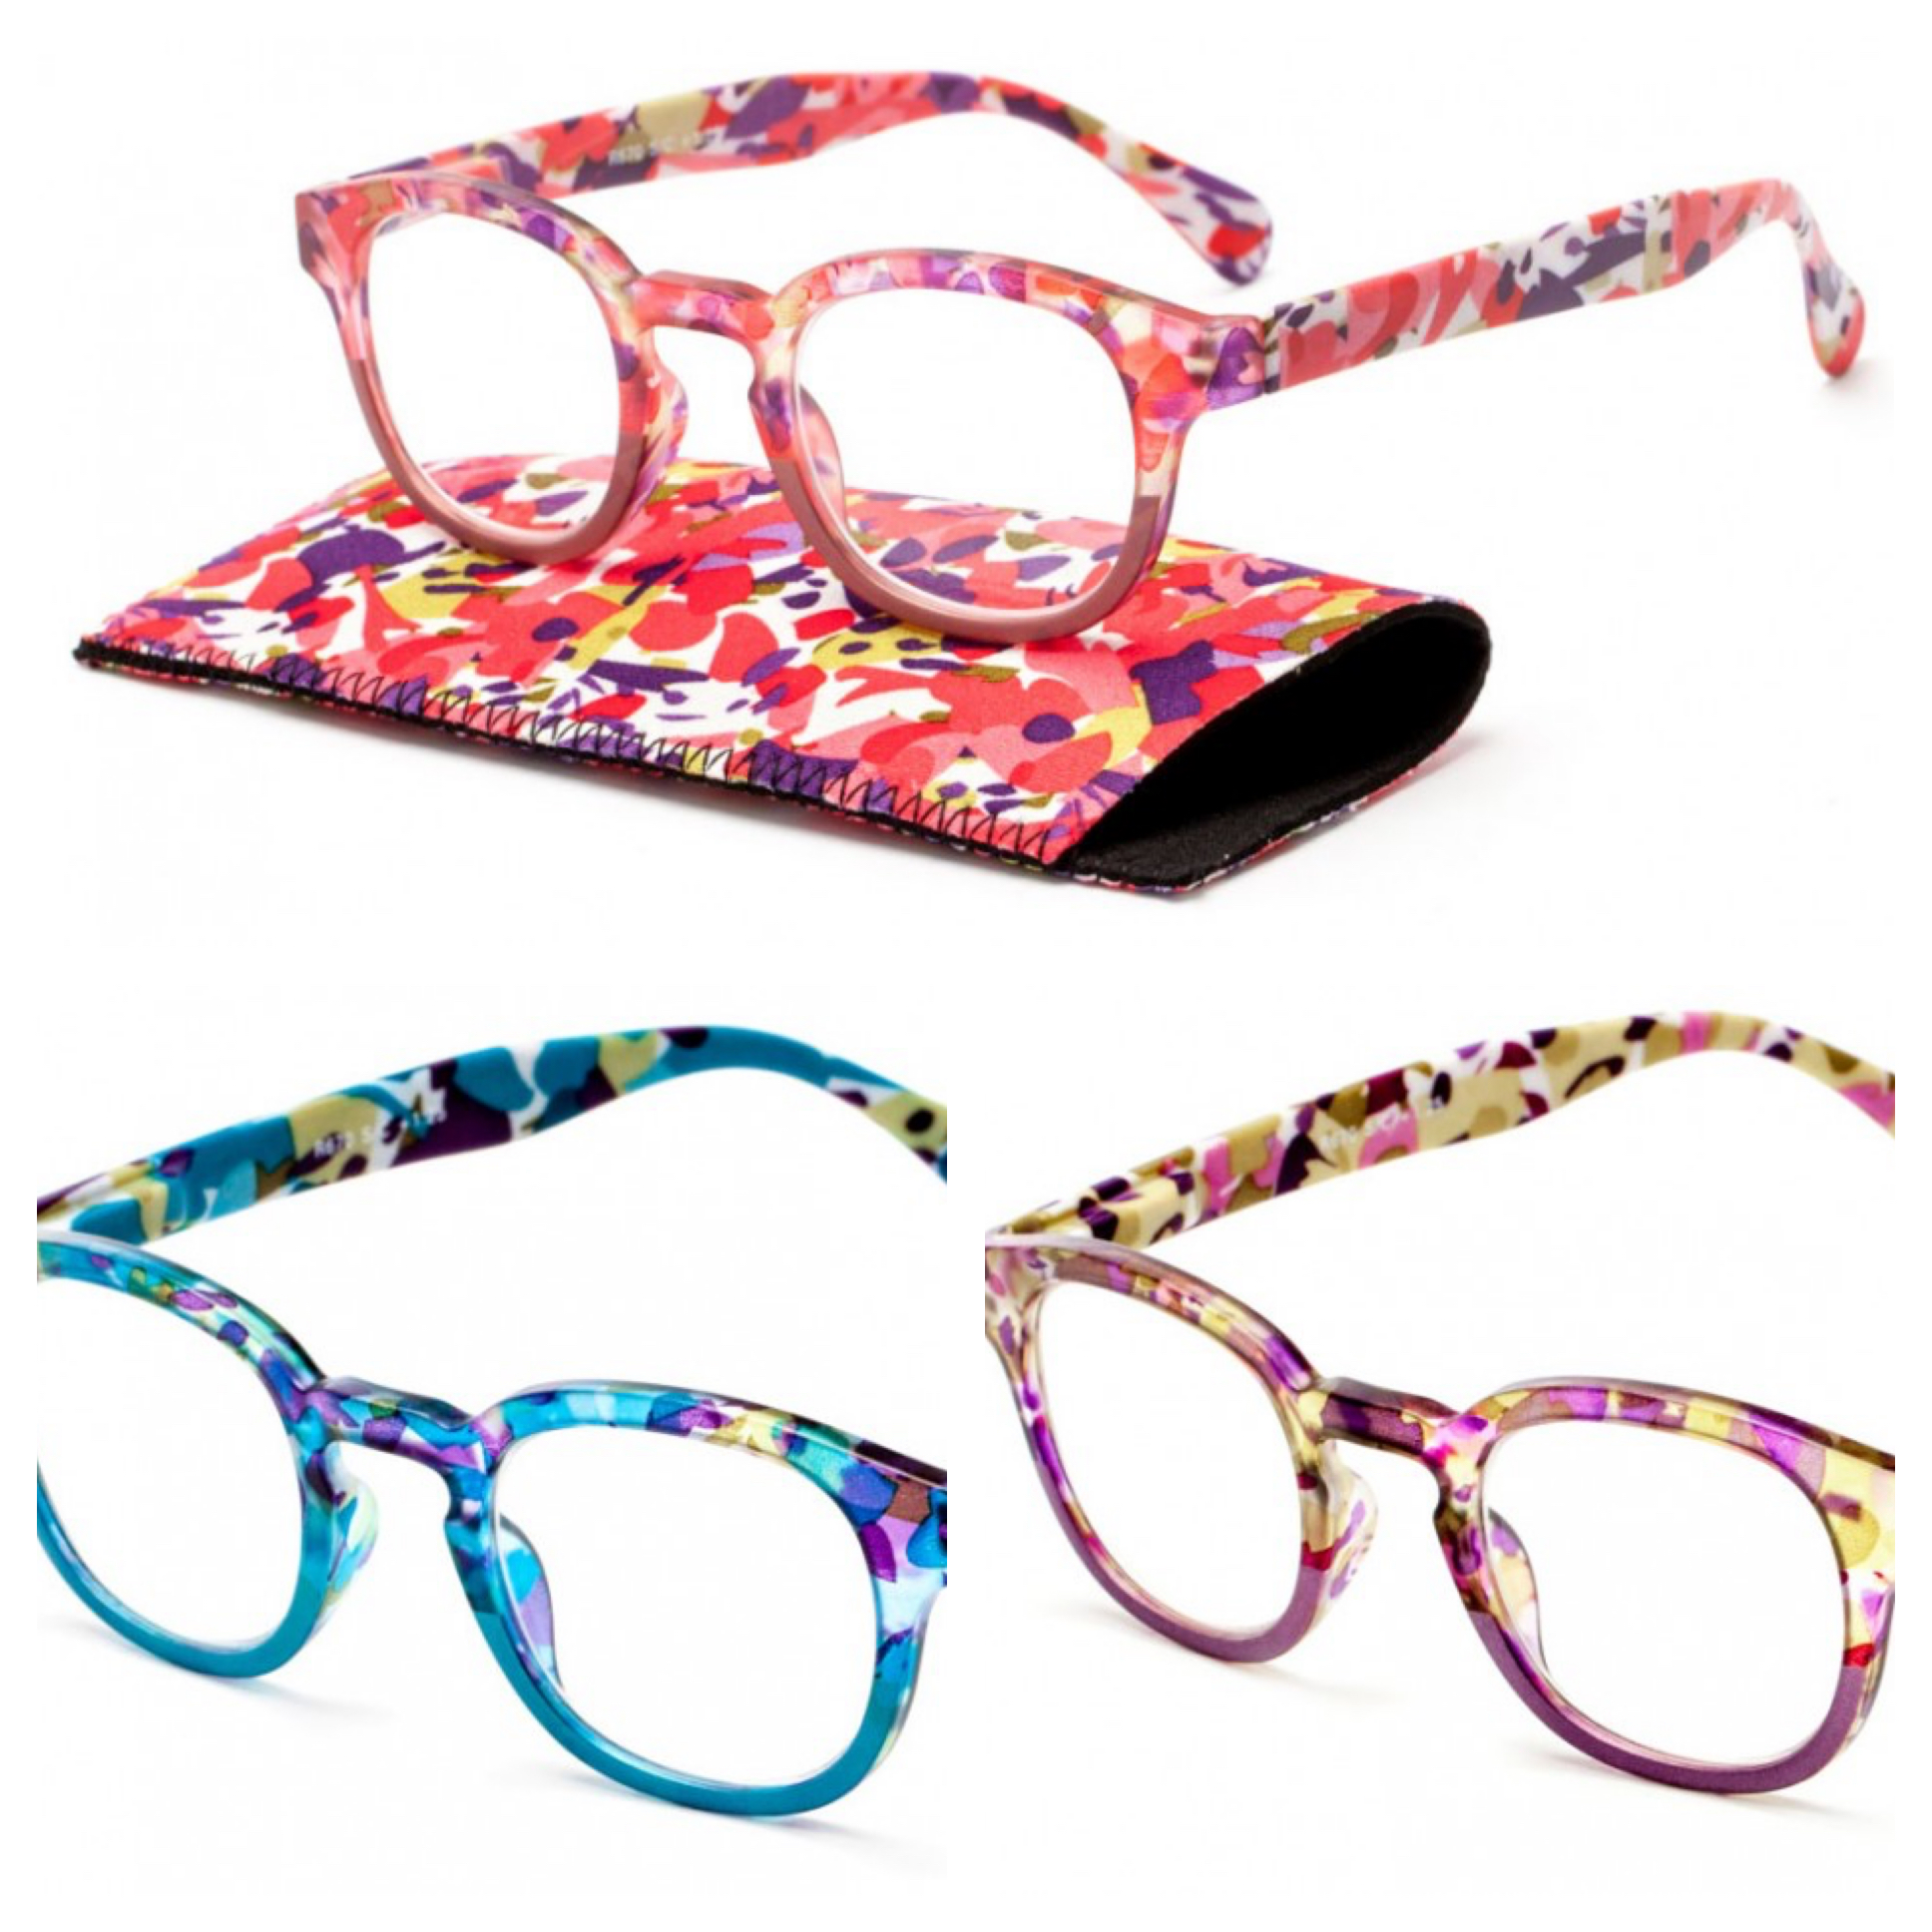 Bouquet readers; reading glasses; midlife eyes; far-sighted eyes